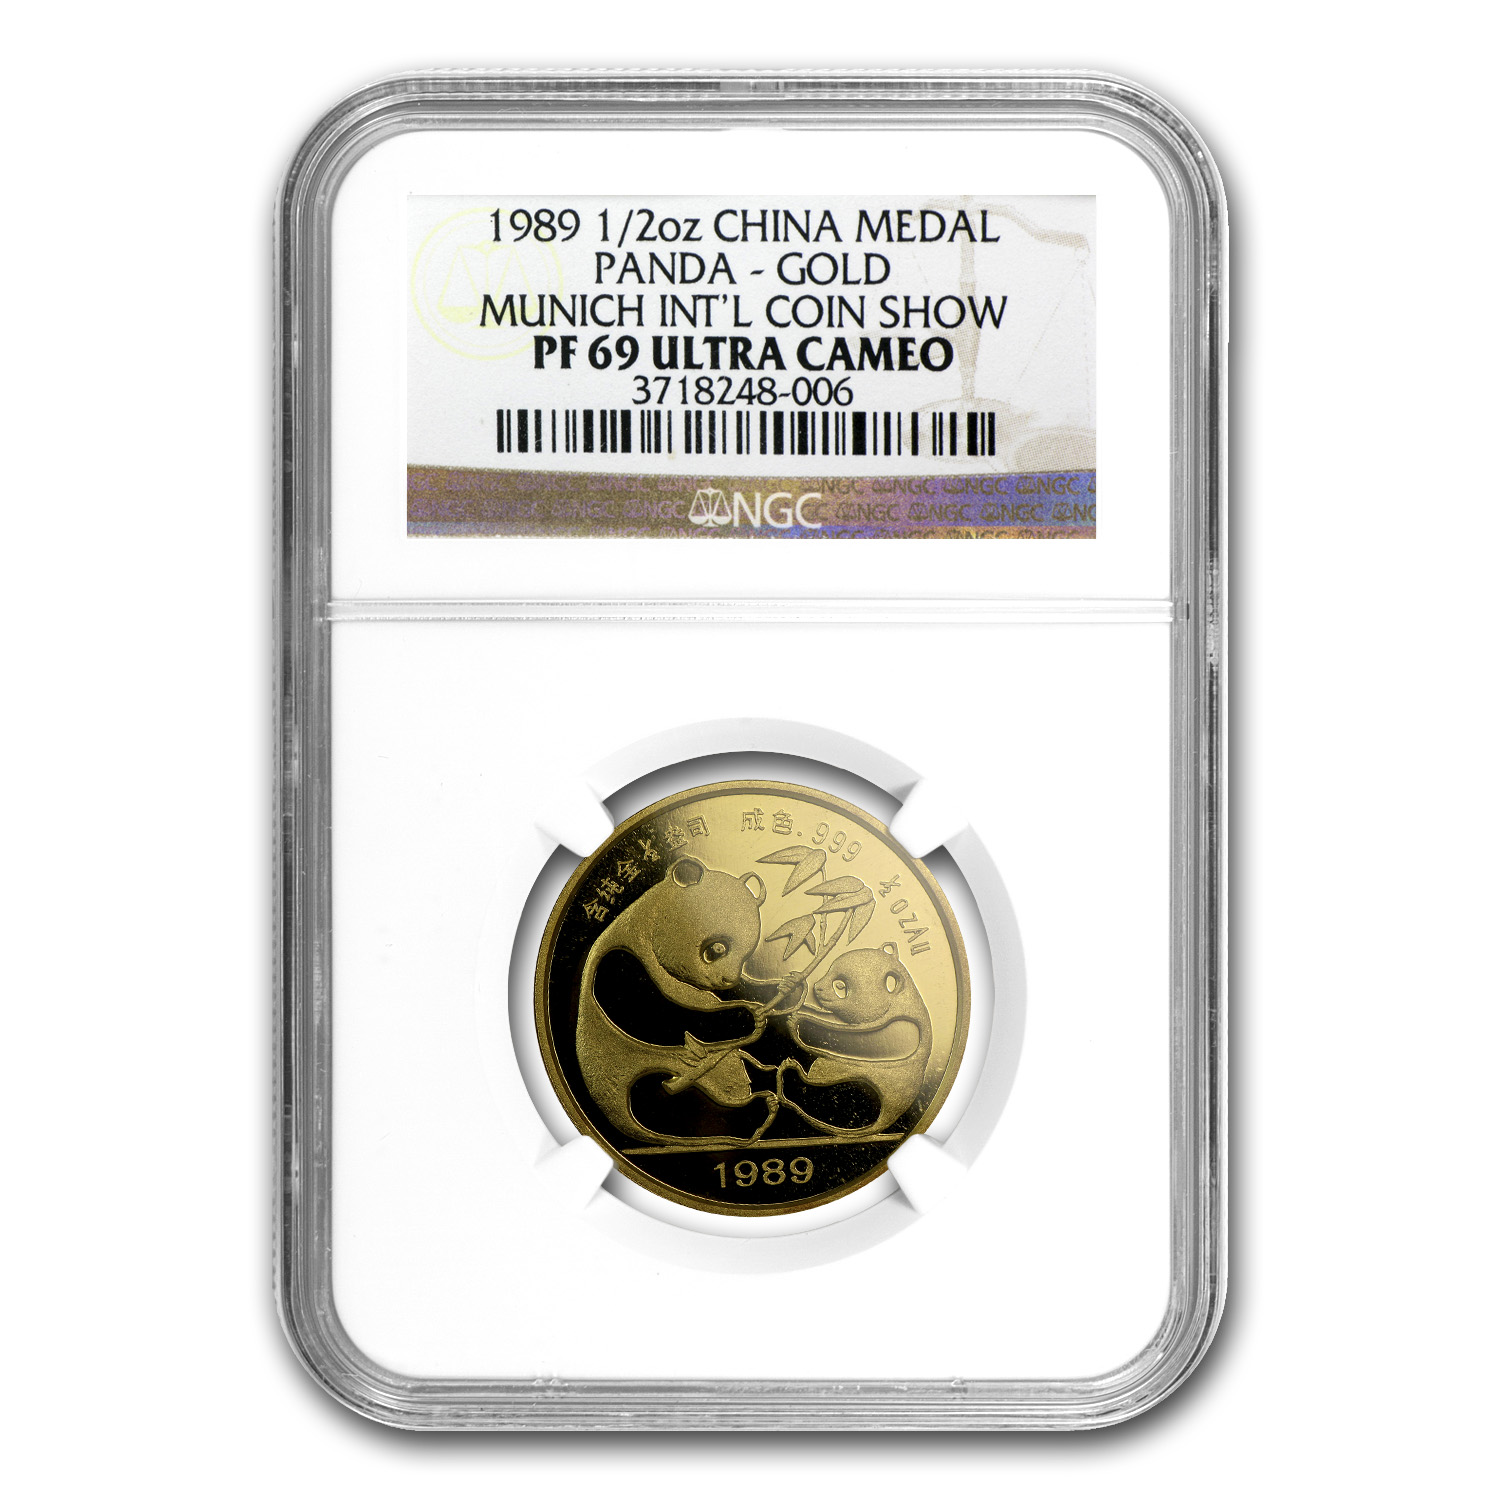 1989 China 1/2 oz Gold Panda PF-69 NGC (Munich Coin Show)